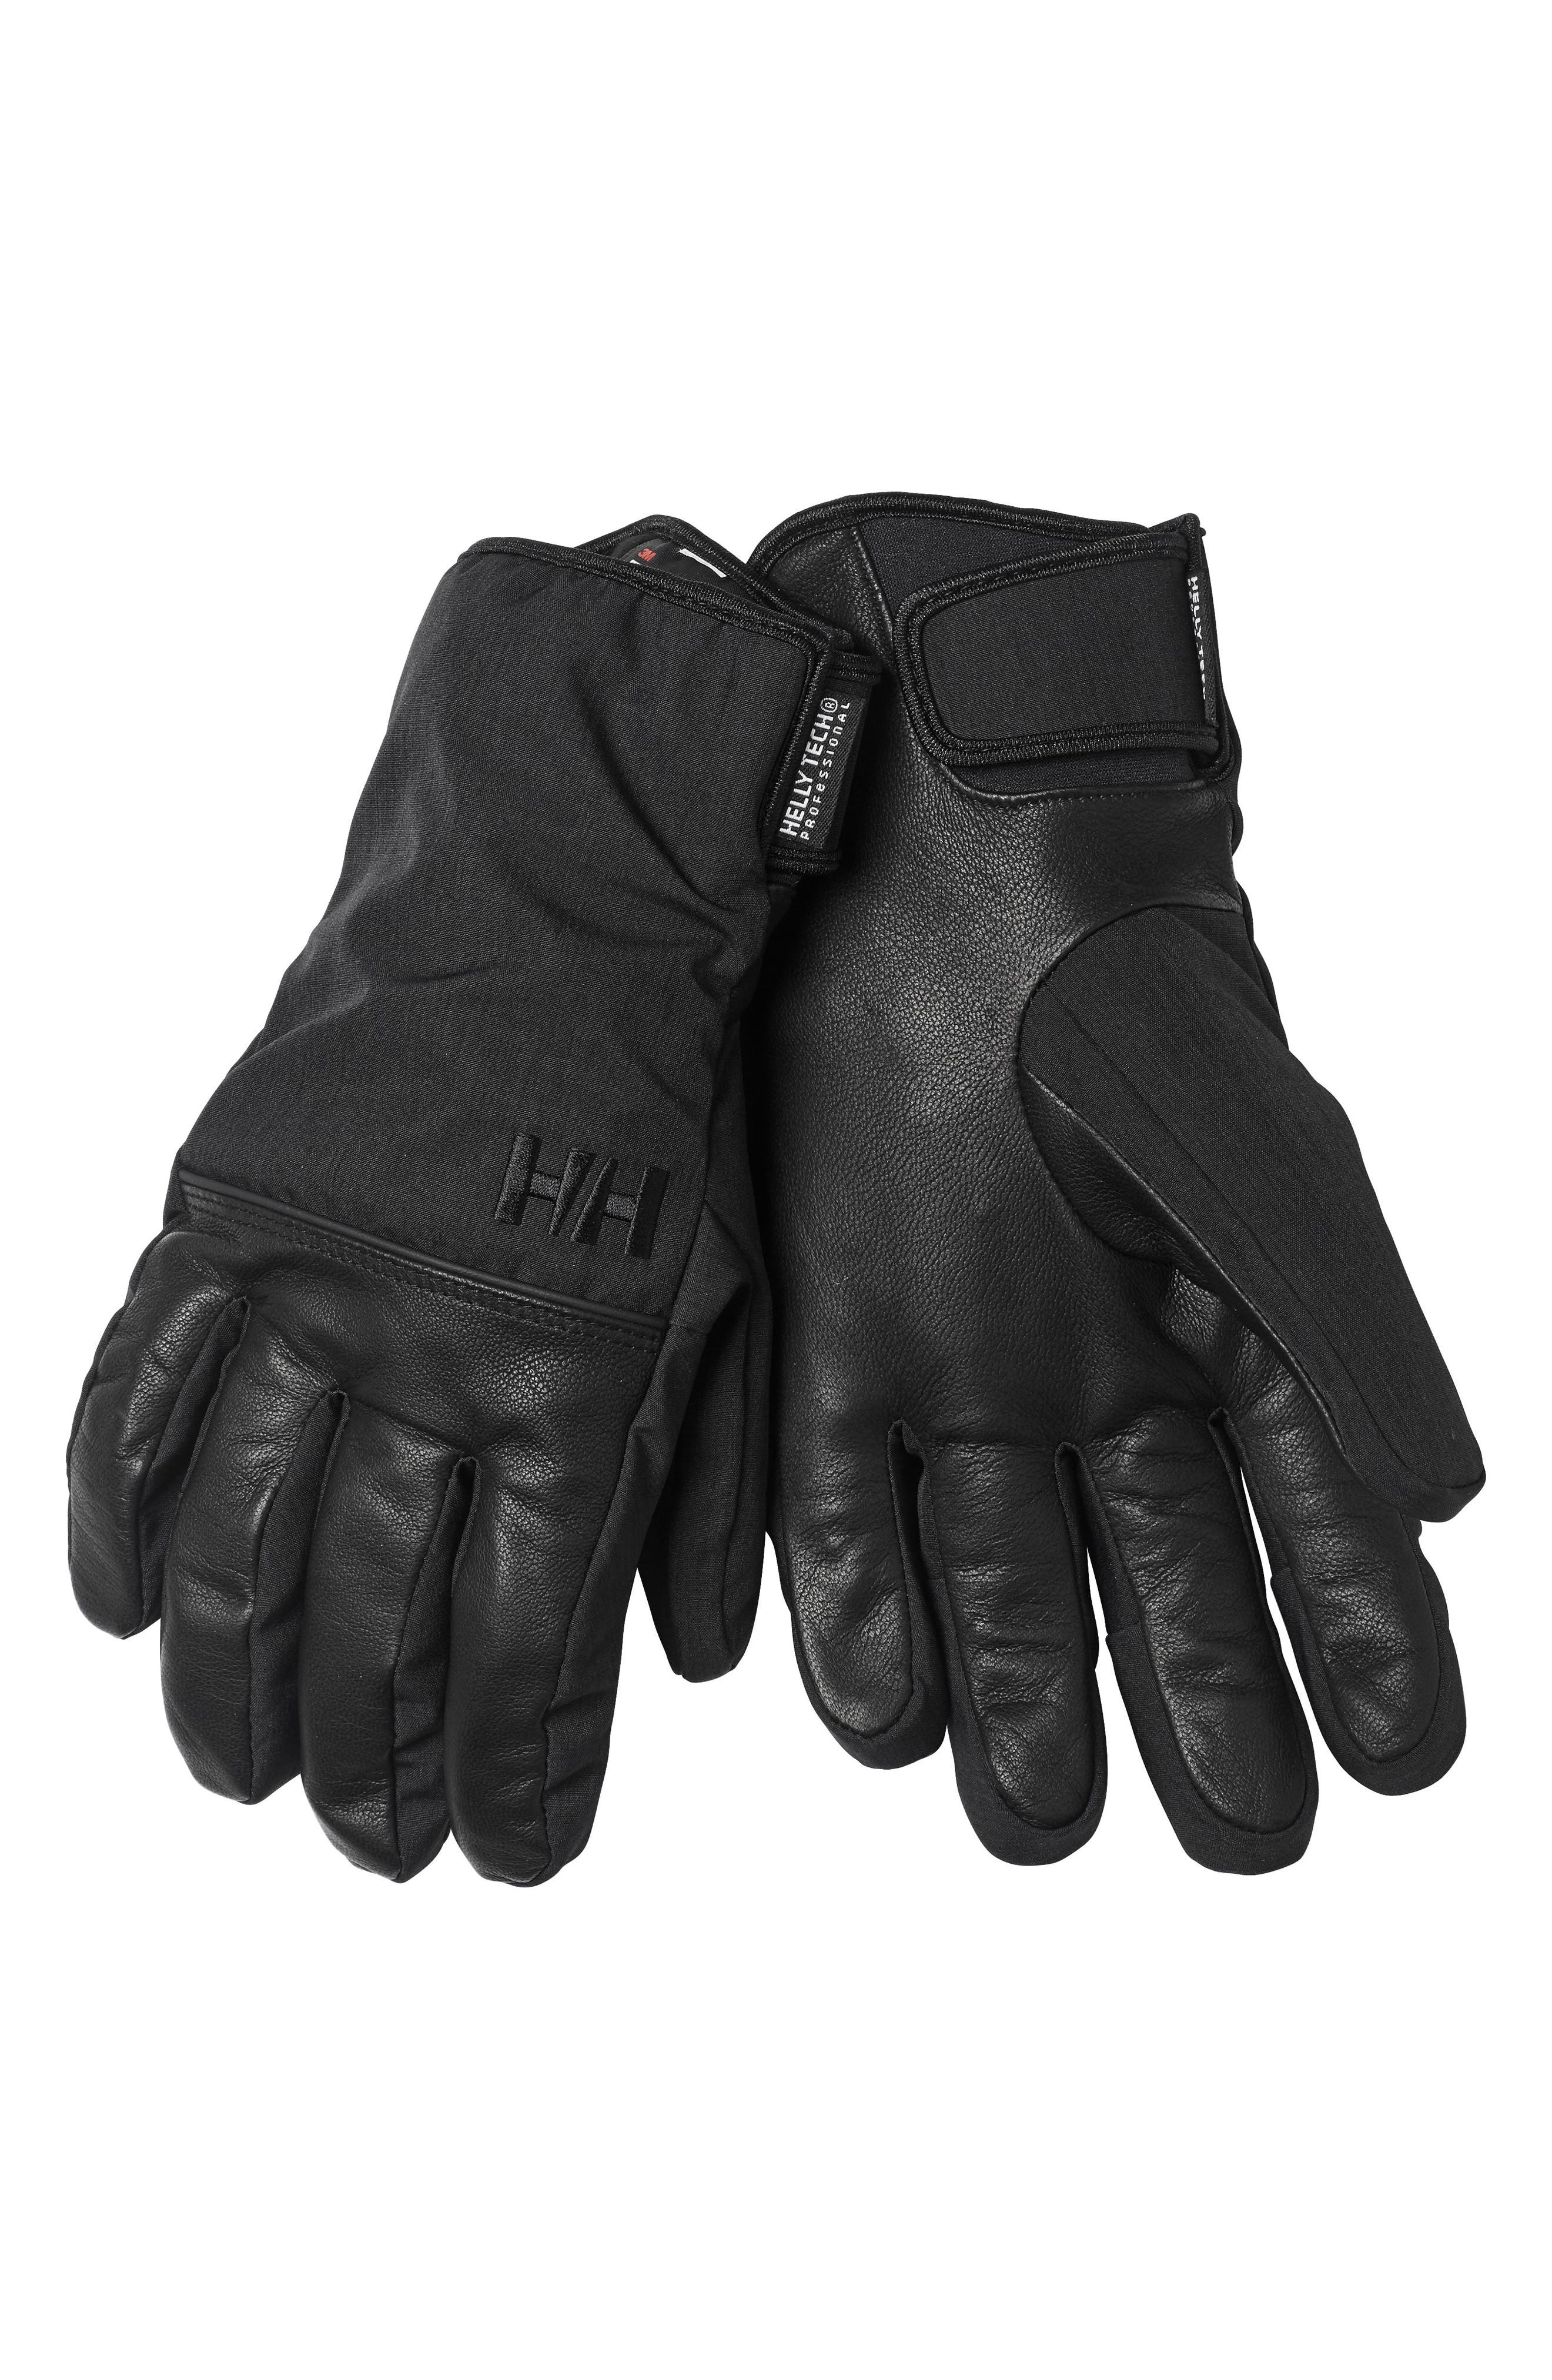 Rogue HT Gloves,                         Main,                         color, 009